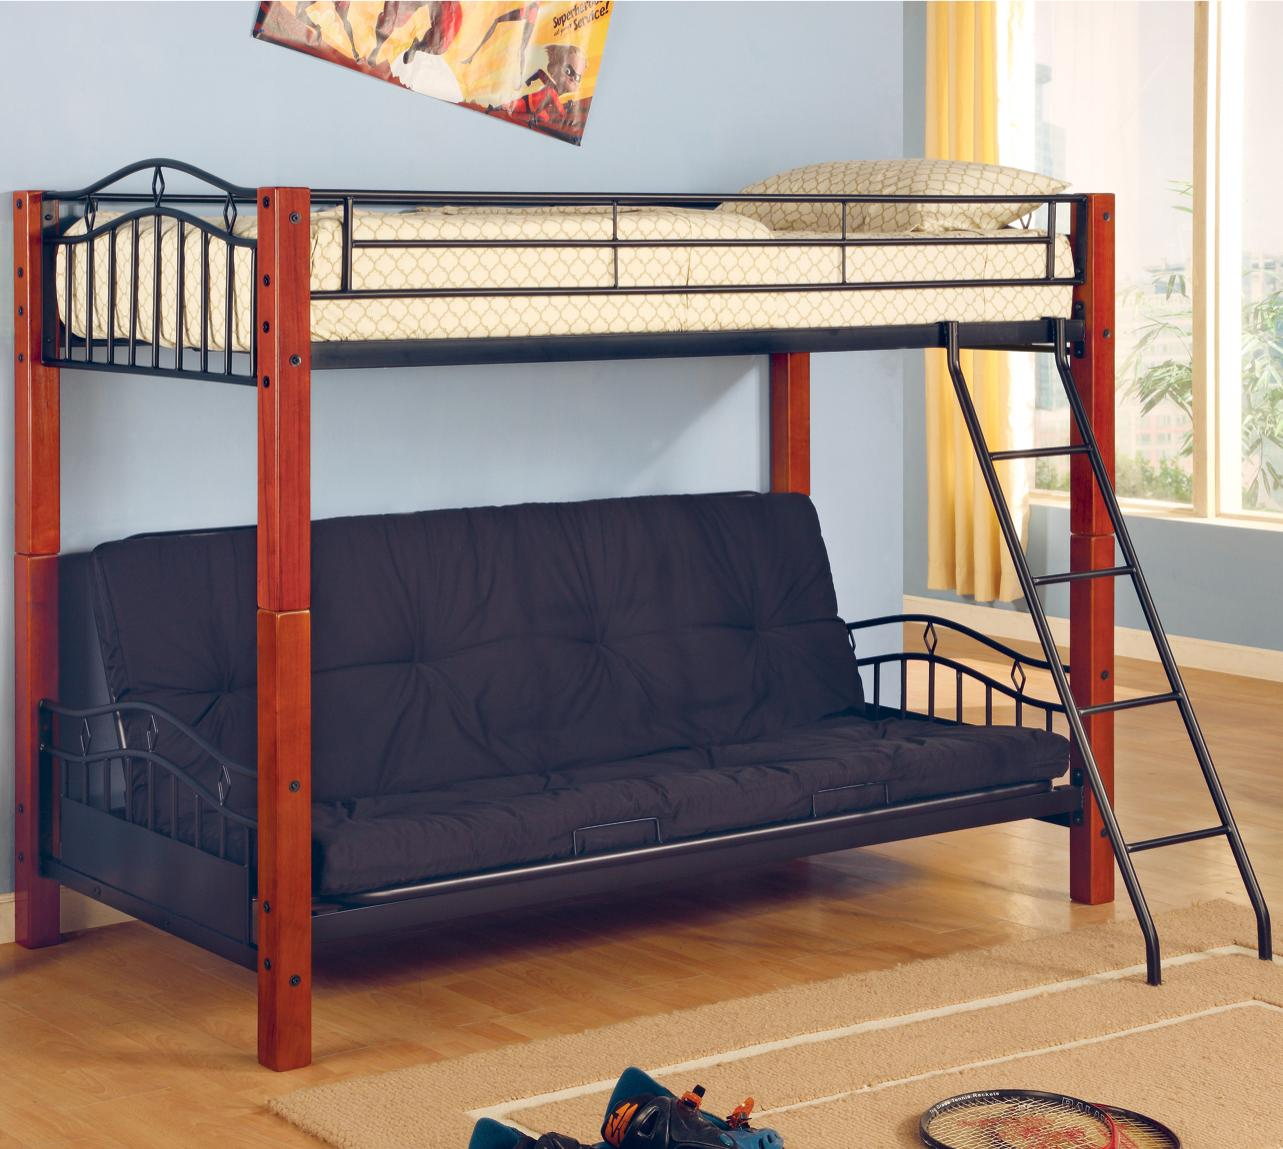 Cheap Kids Beds Online Haskell Metal And Wood Casual Twin Over Futon Bunk Bed By Coaster At Value City Furniture